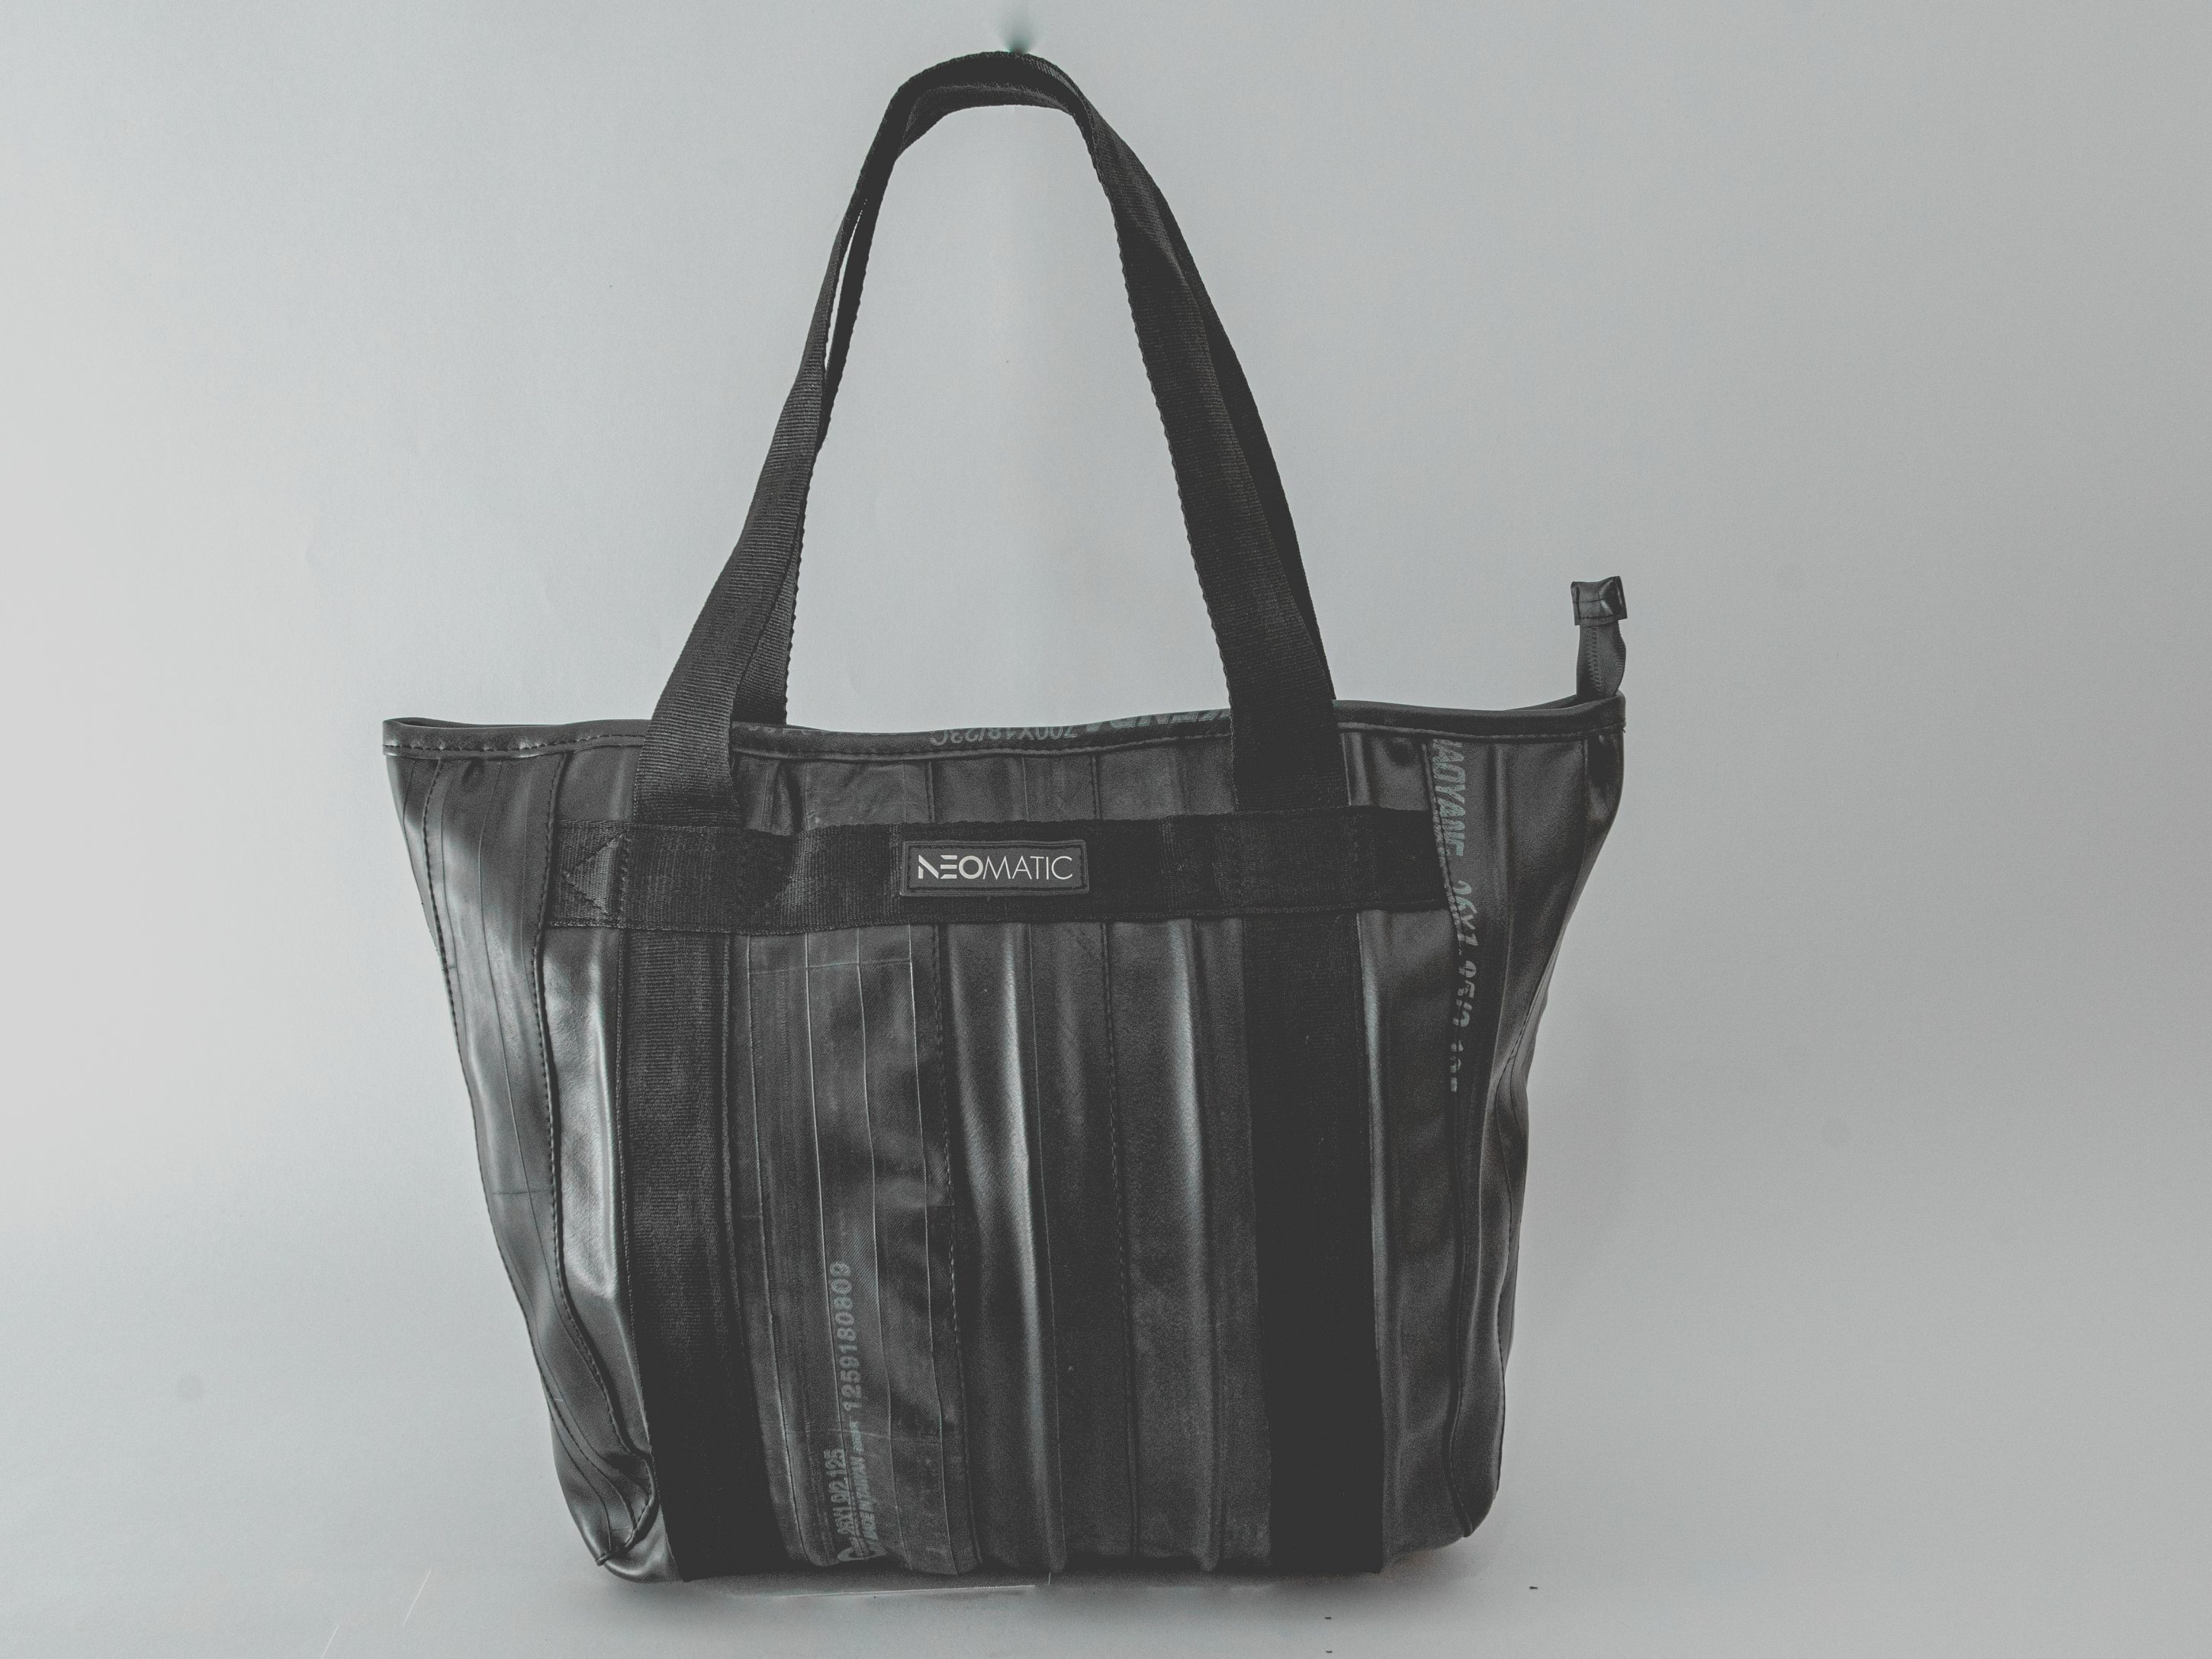 NeoMatic TOTE BAG